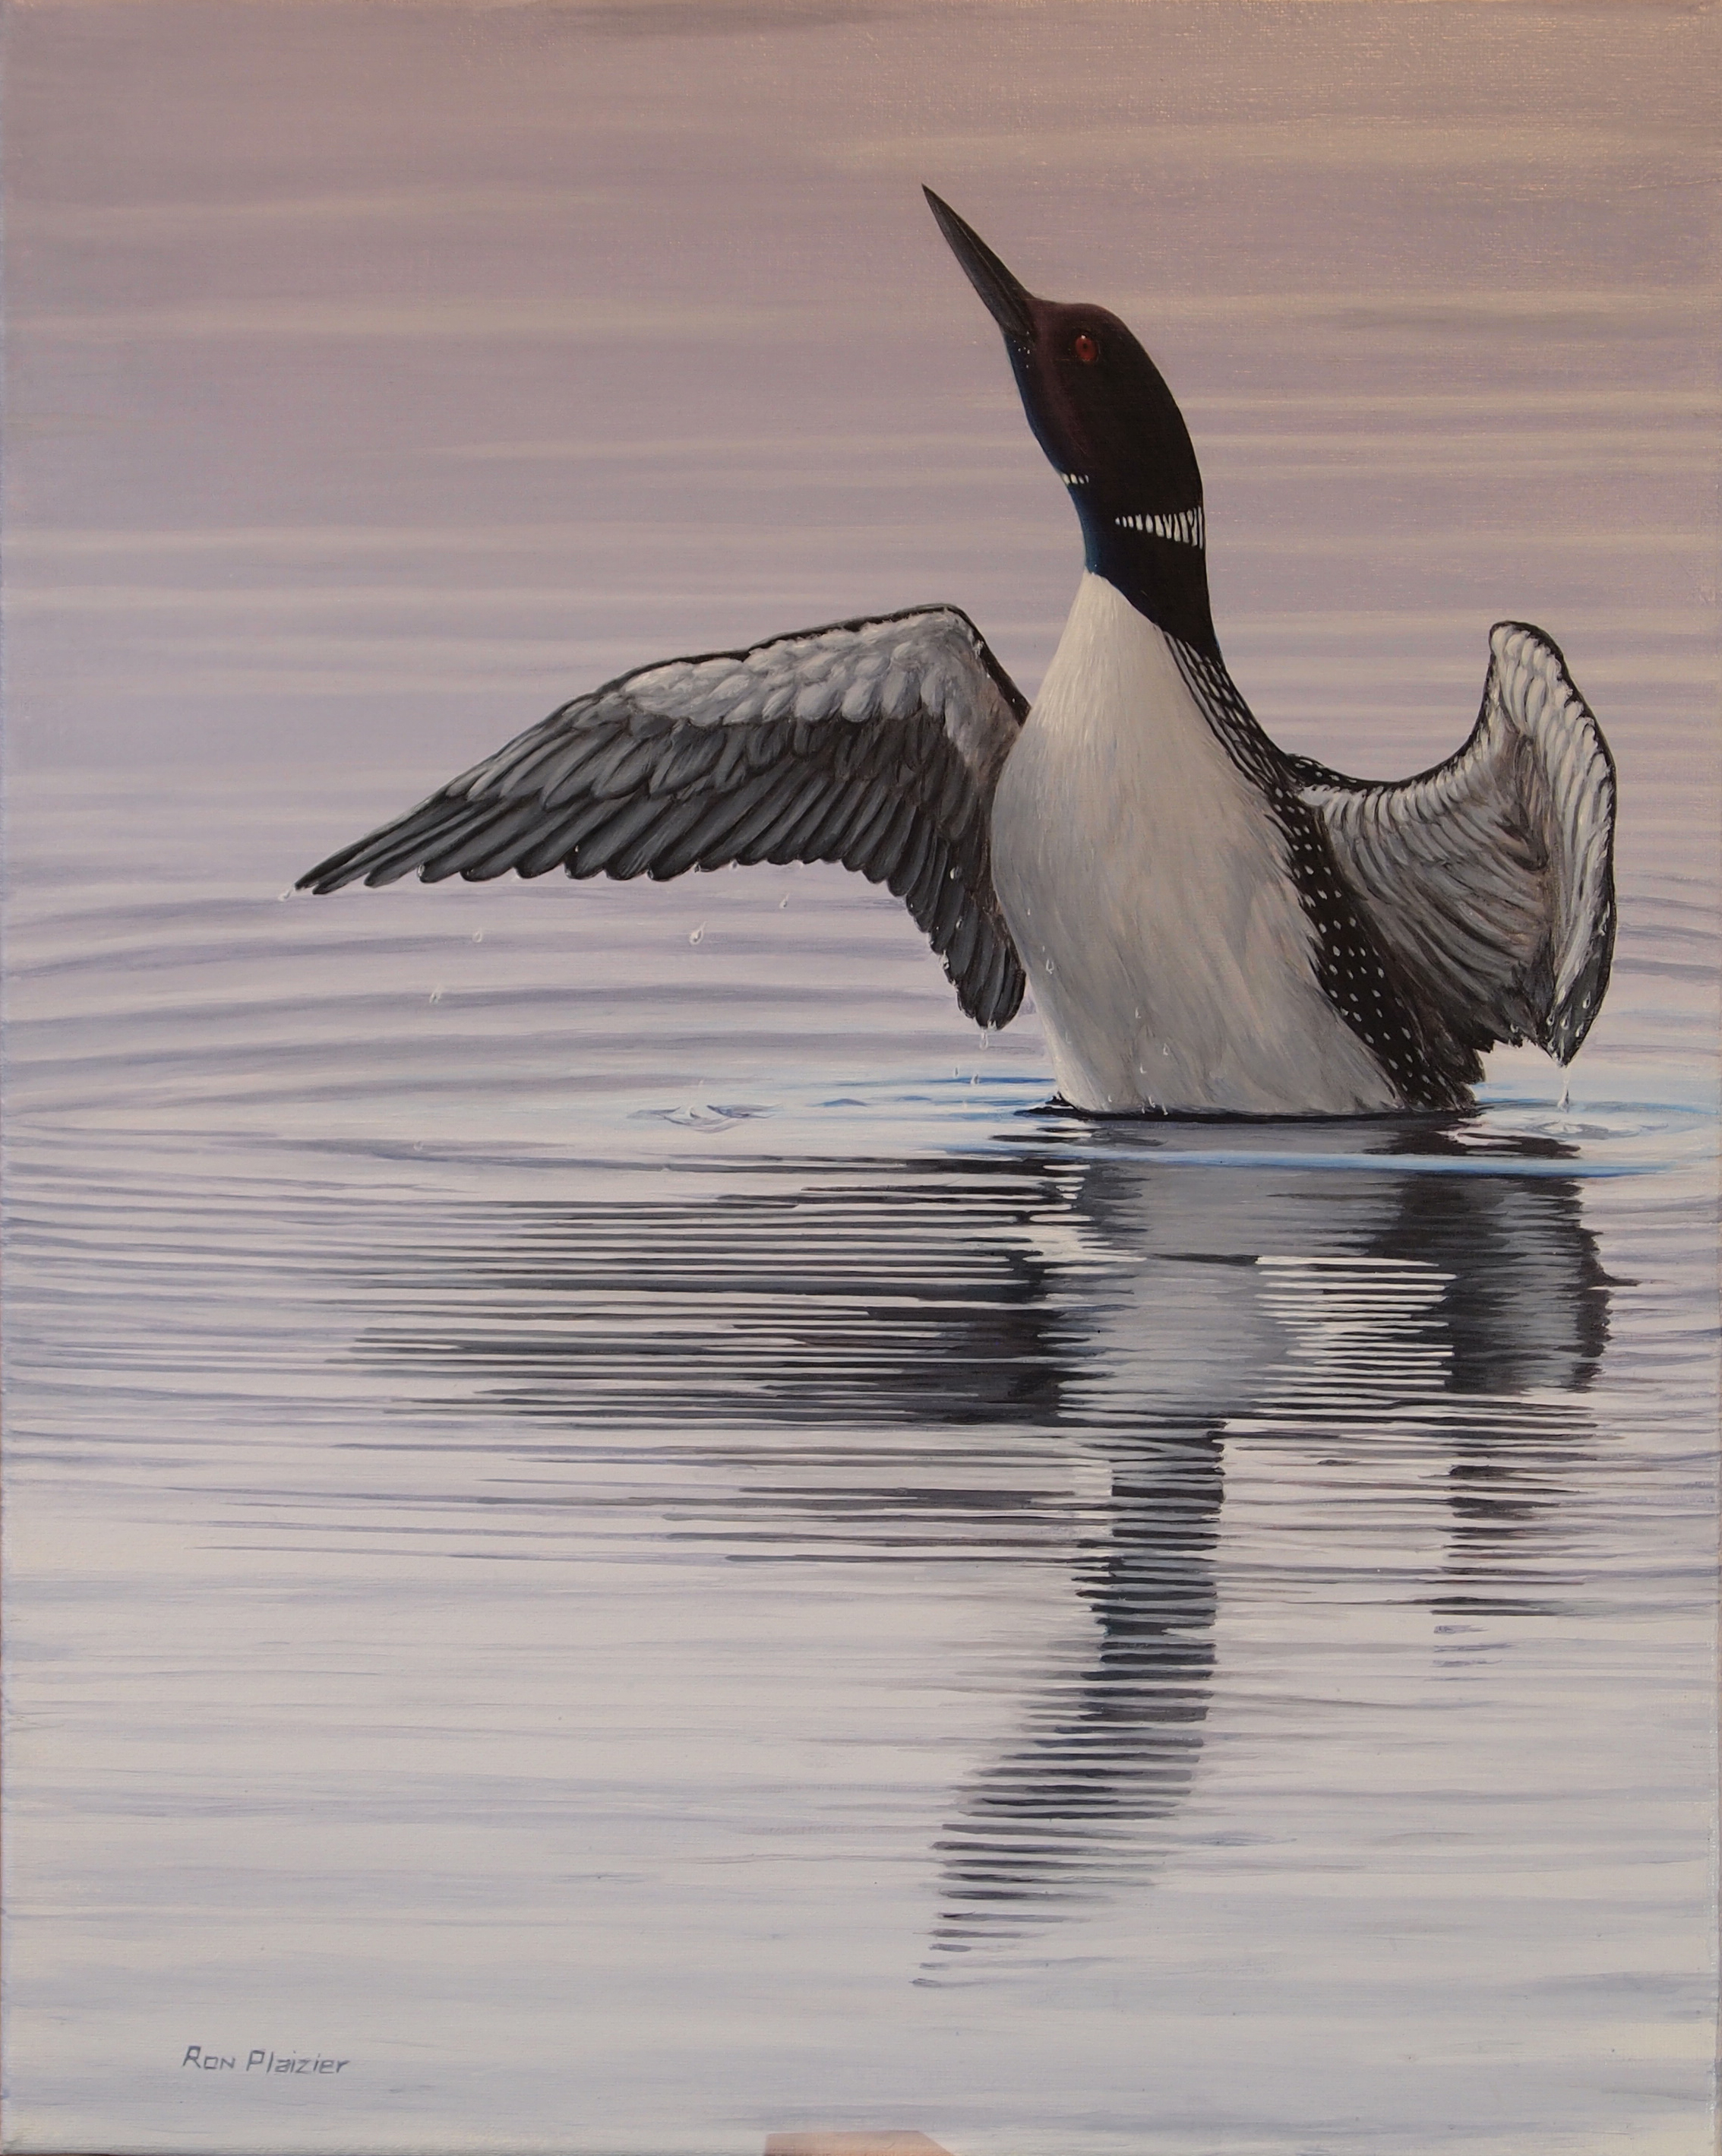 Crowe Lake Loon